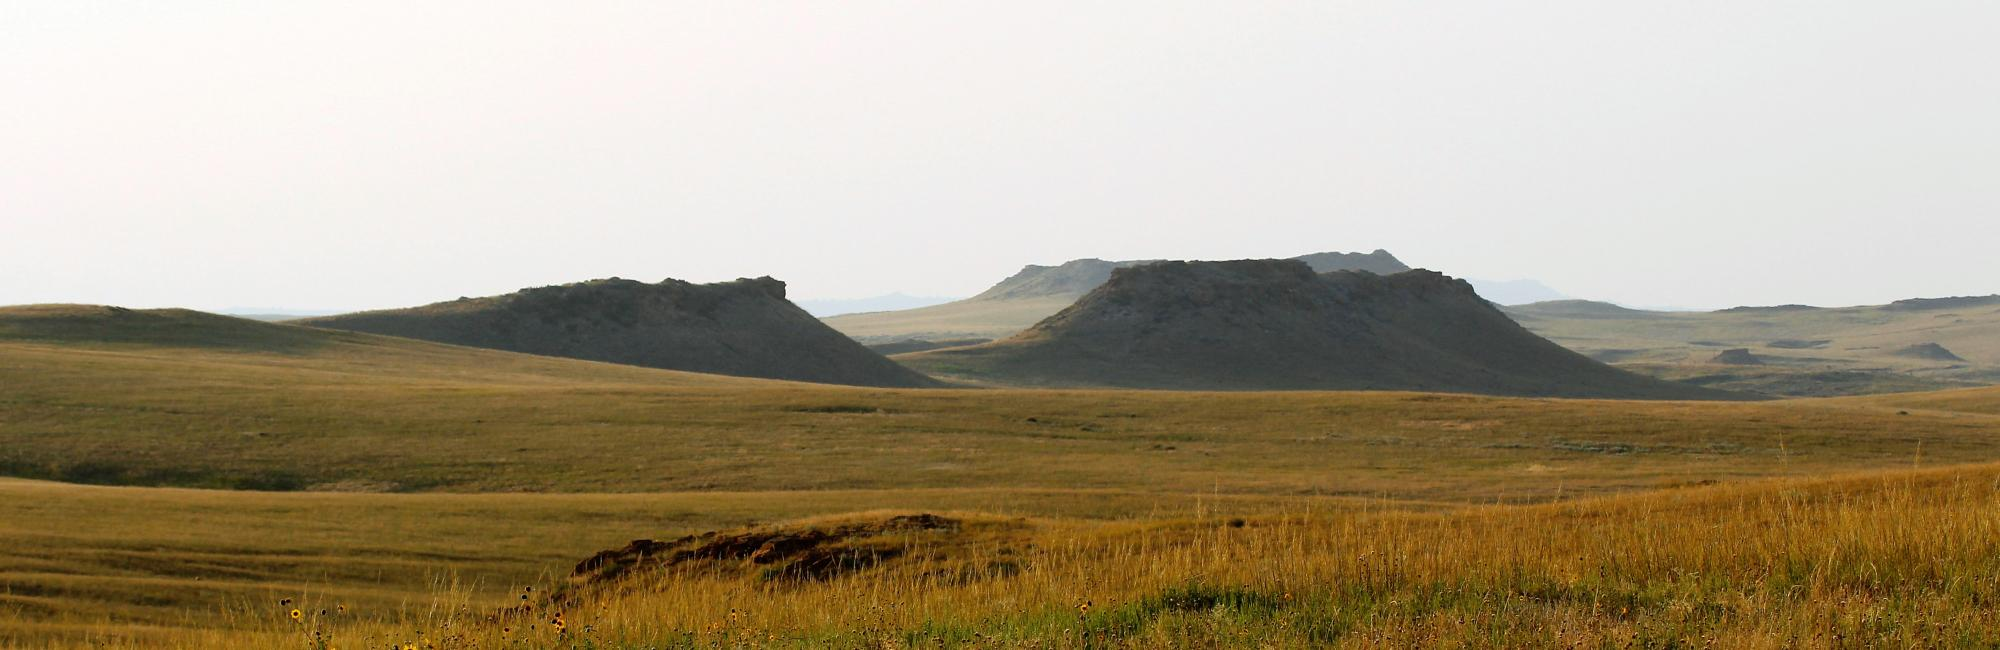 Buttes on the landscape